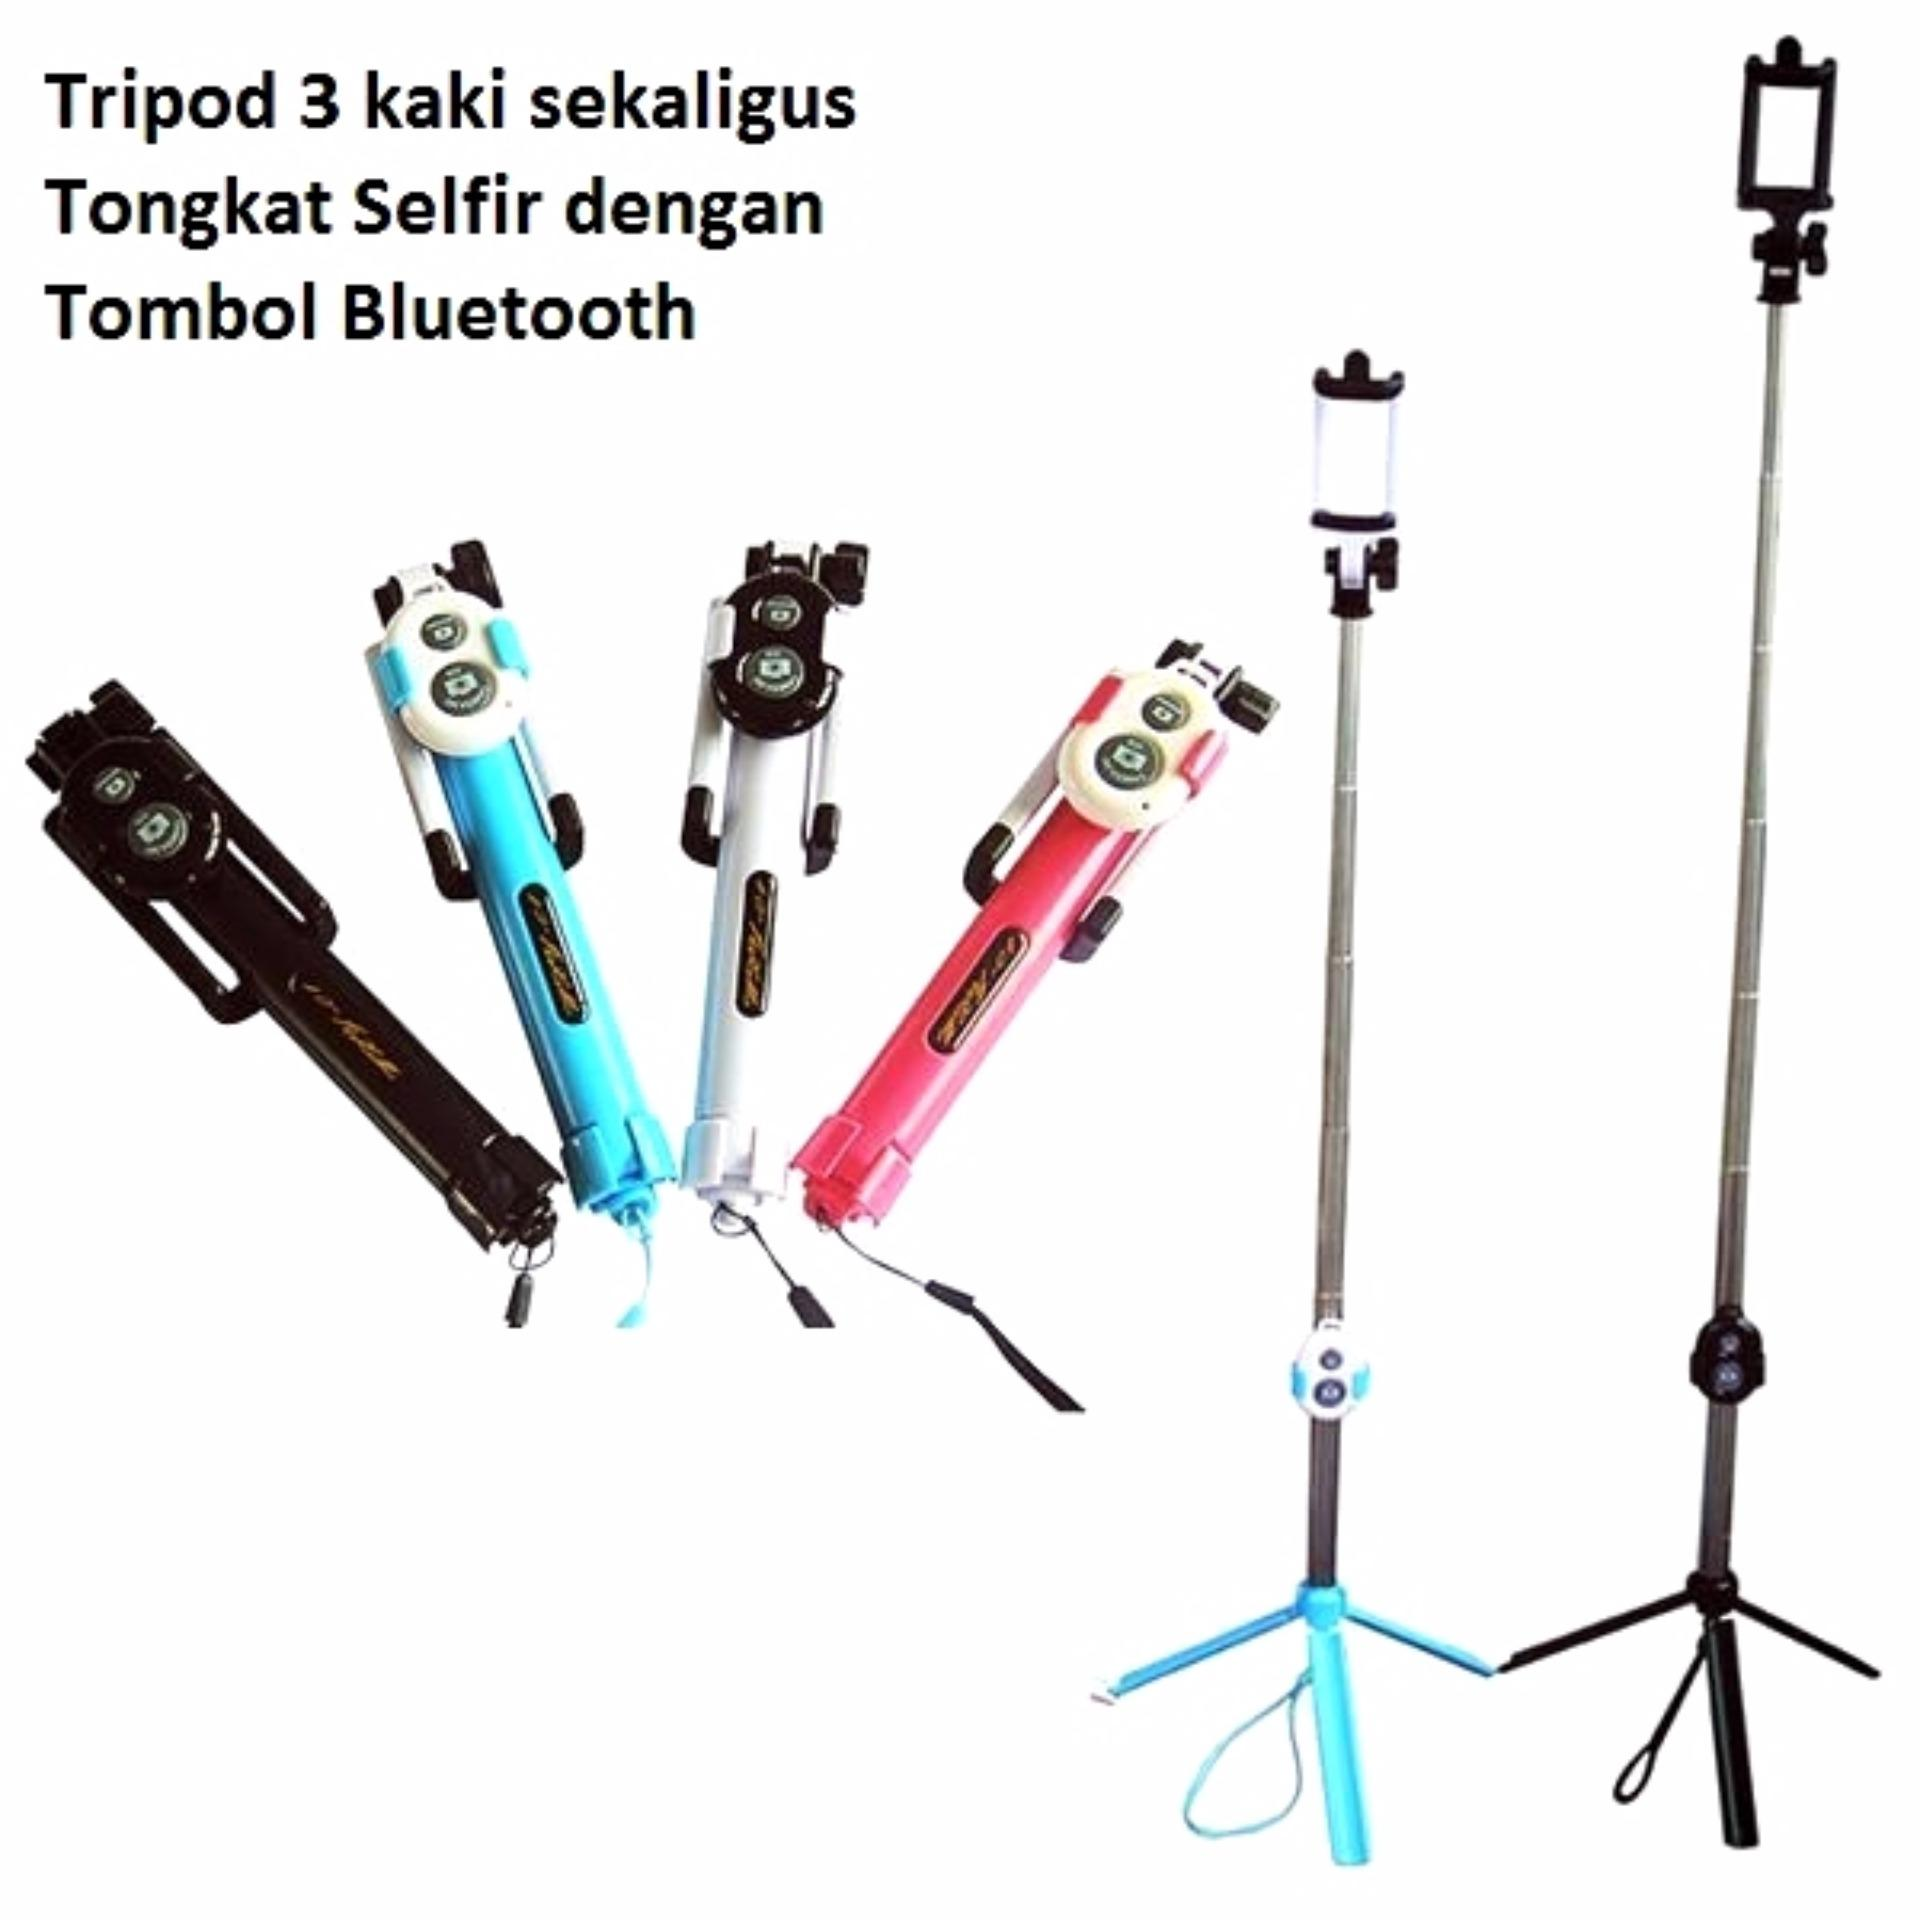 ... Lucky - Tongsis 3 in 1 With Bluetooth + Tripod Selfie Stick - Pink - 1 ...